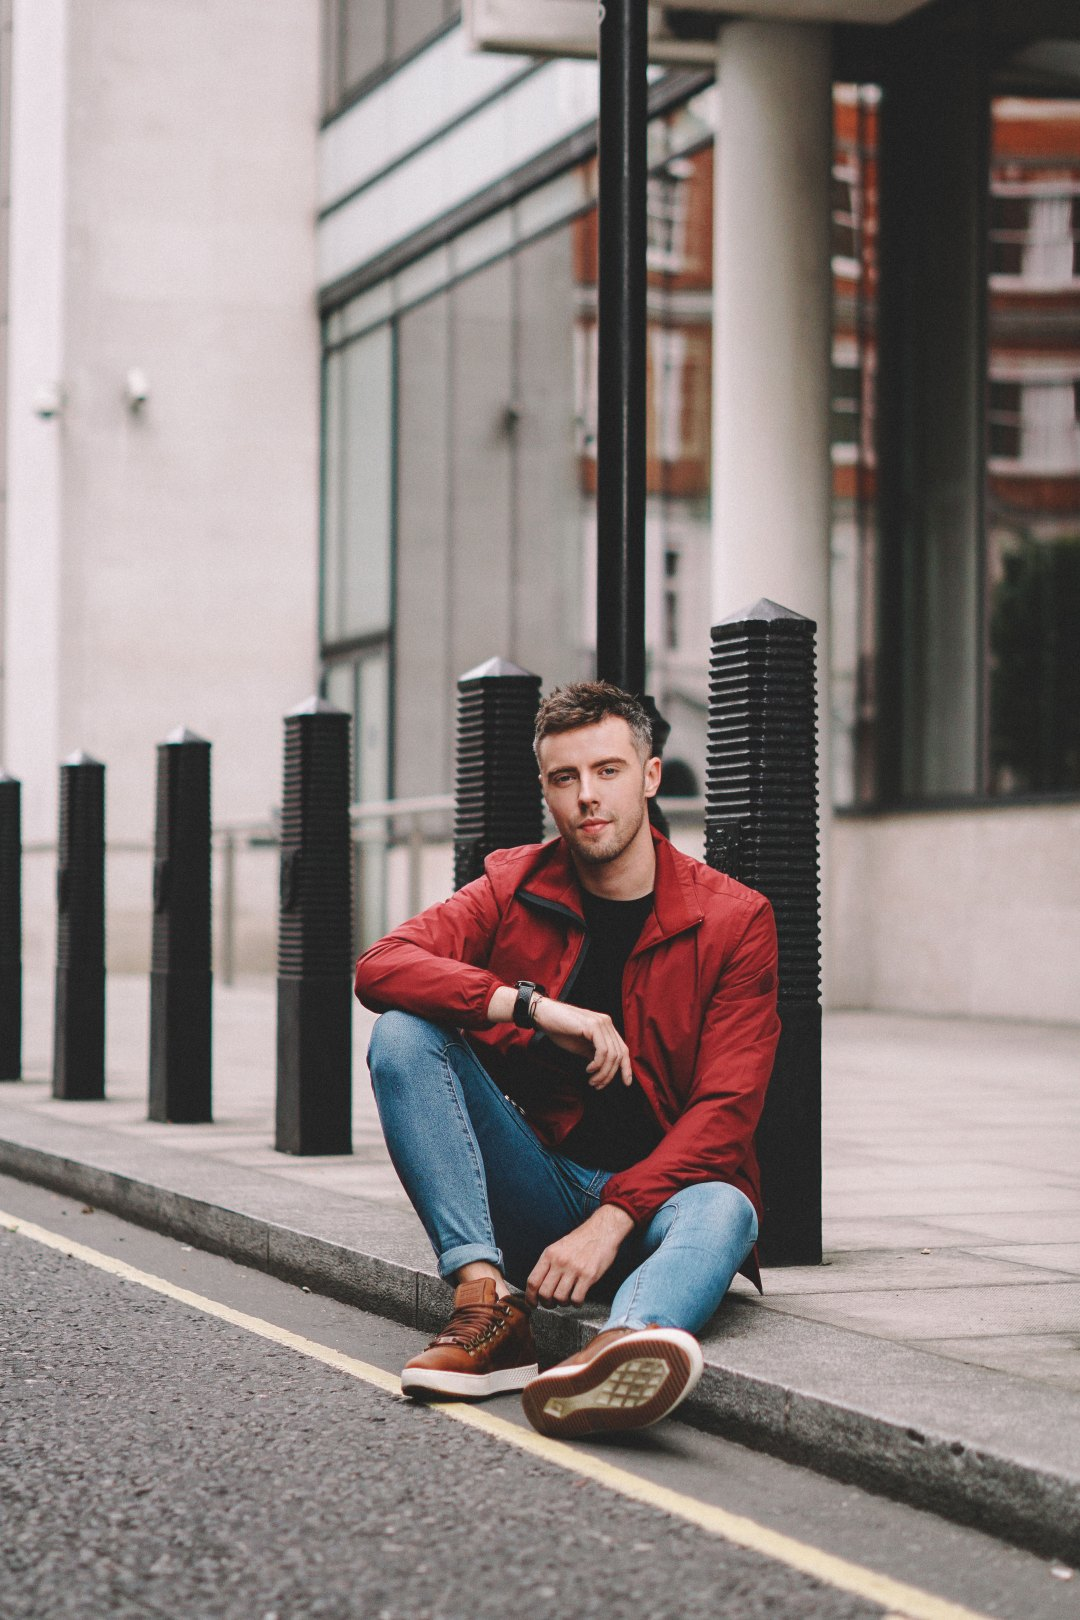 Timberland CityRoam Alpine Chukka Shoes. Roaming Canning Town, London with Kojo Funds. Blog by Skirmantas Petraitis.